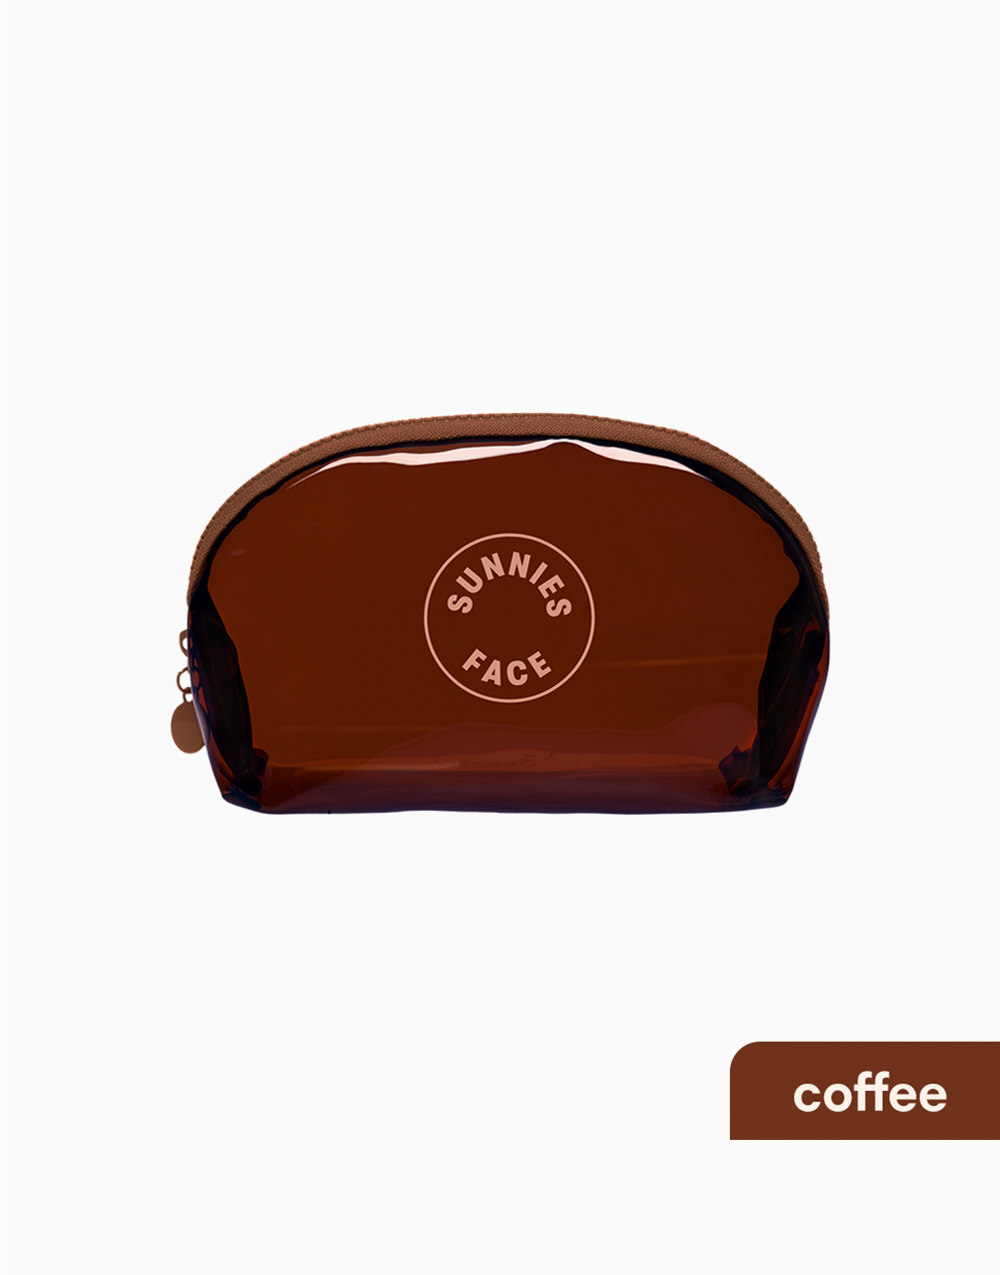 Sunnies Face Jelly Pouch [Makeup Pouch] (Coffee) by Sunnies Face